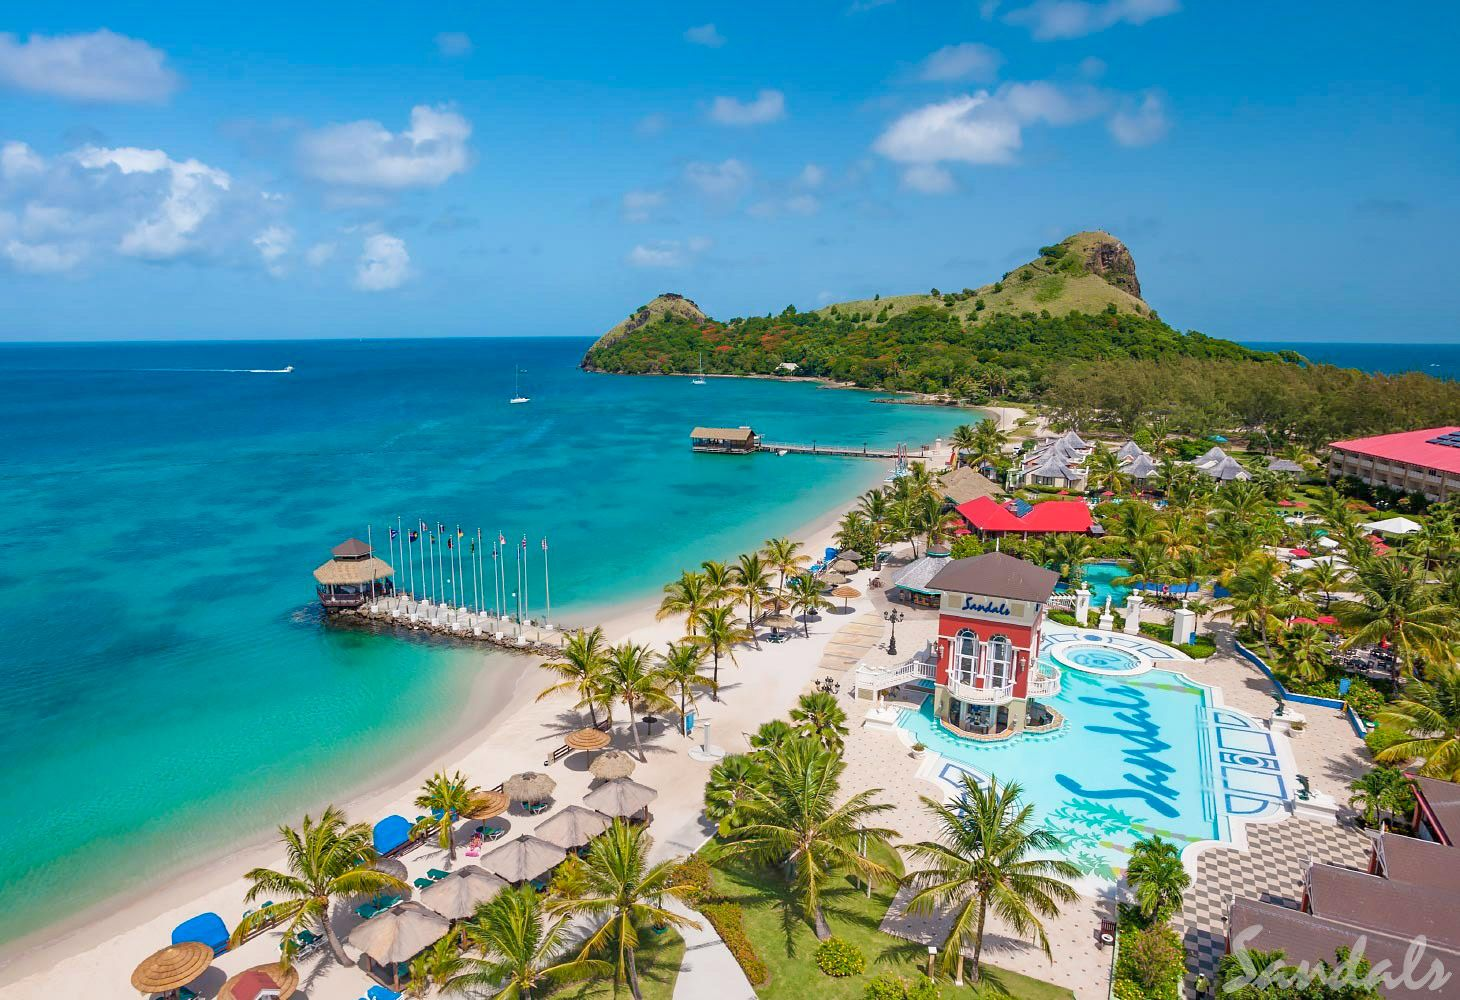 sandals grande st lucian all inclusive resort